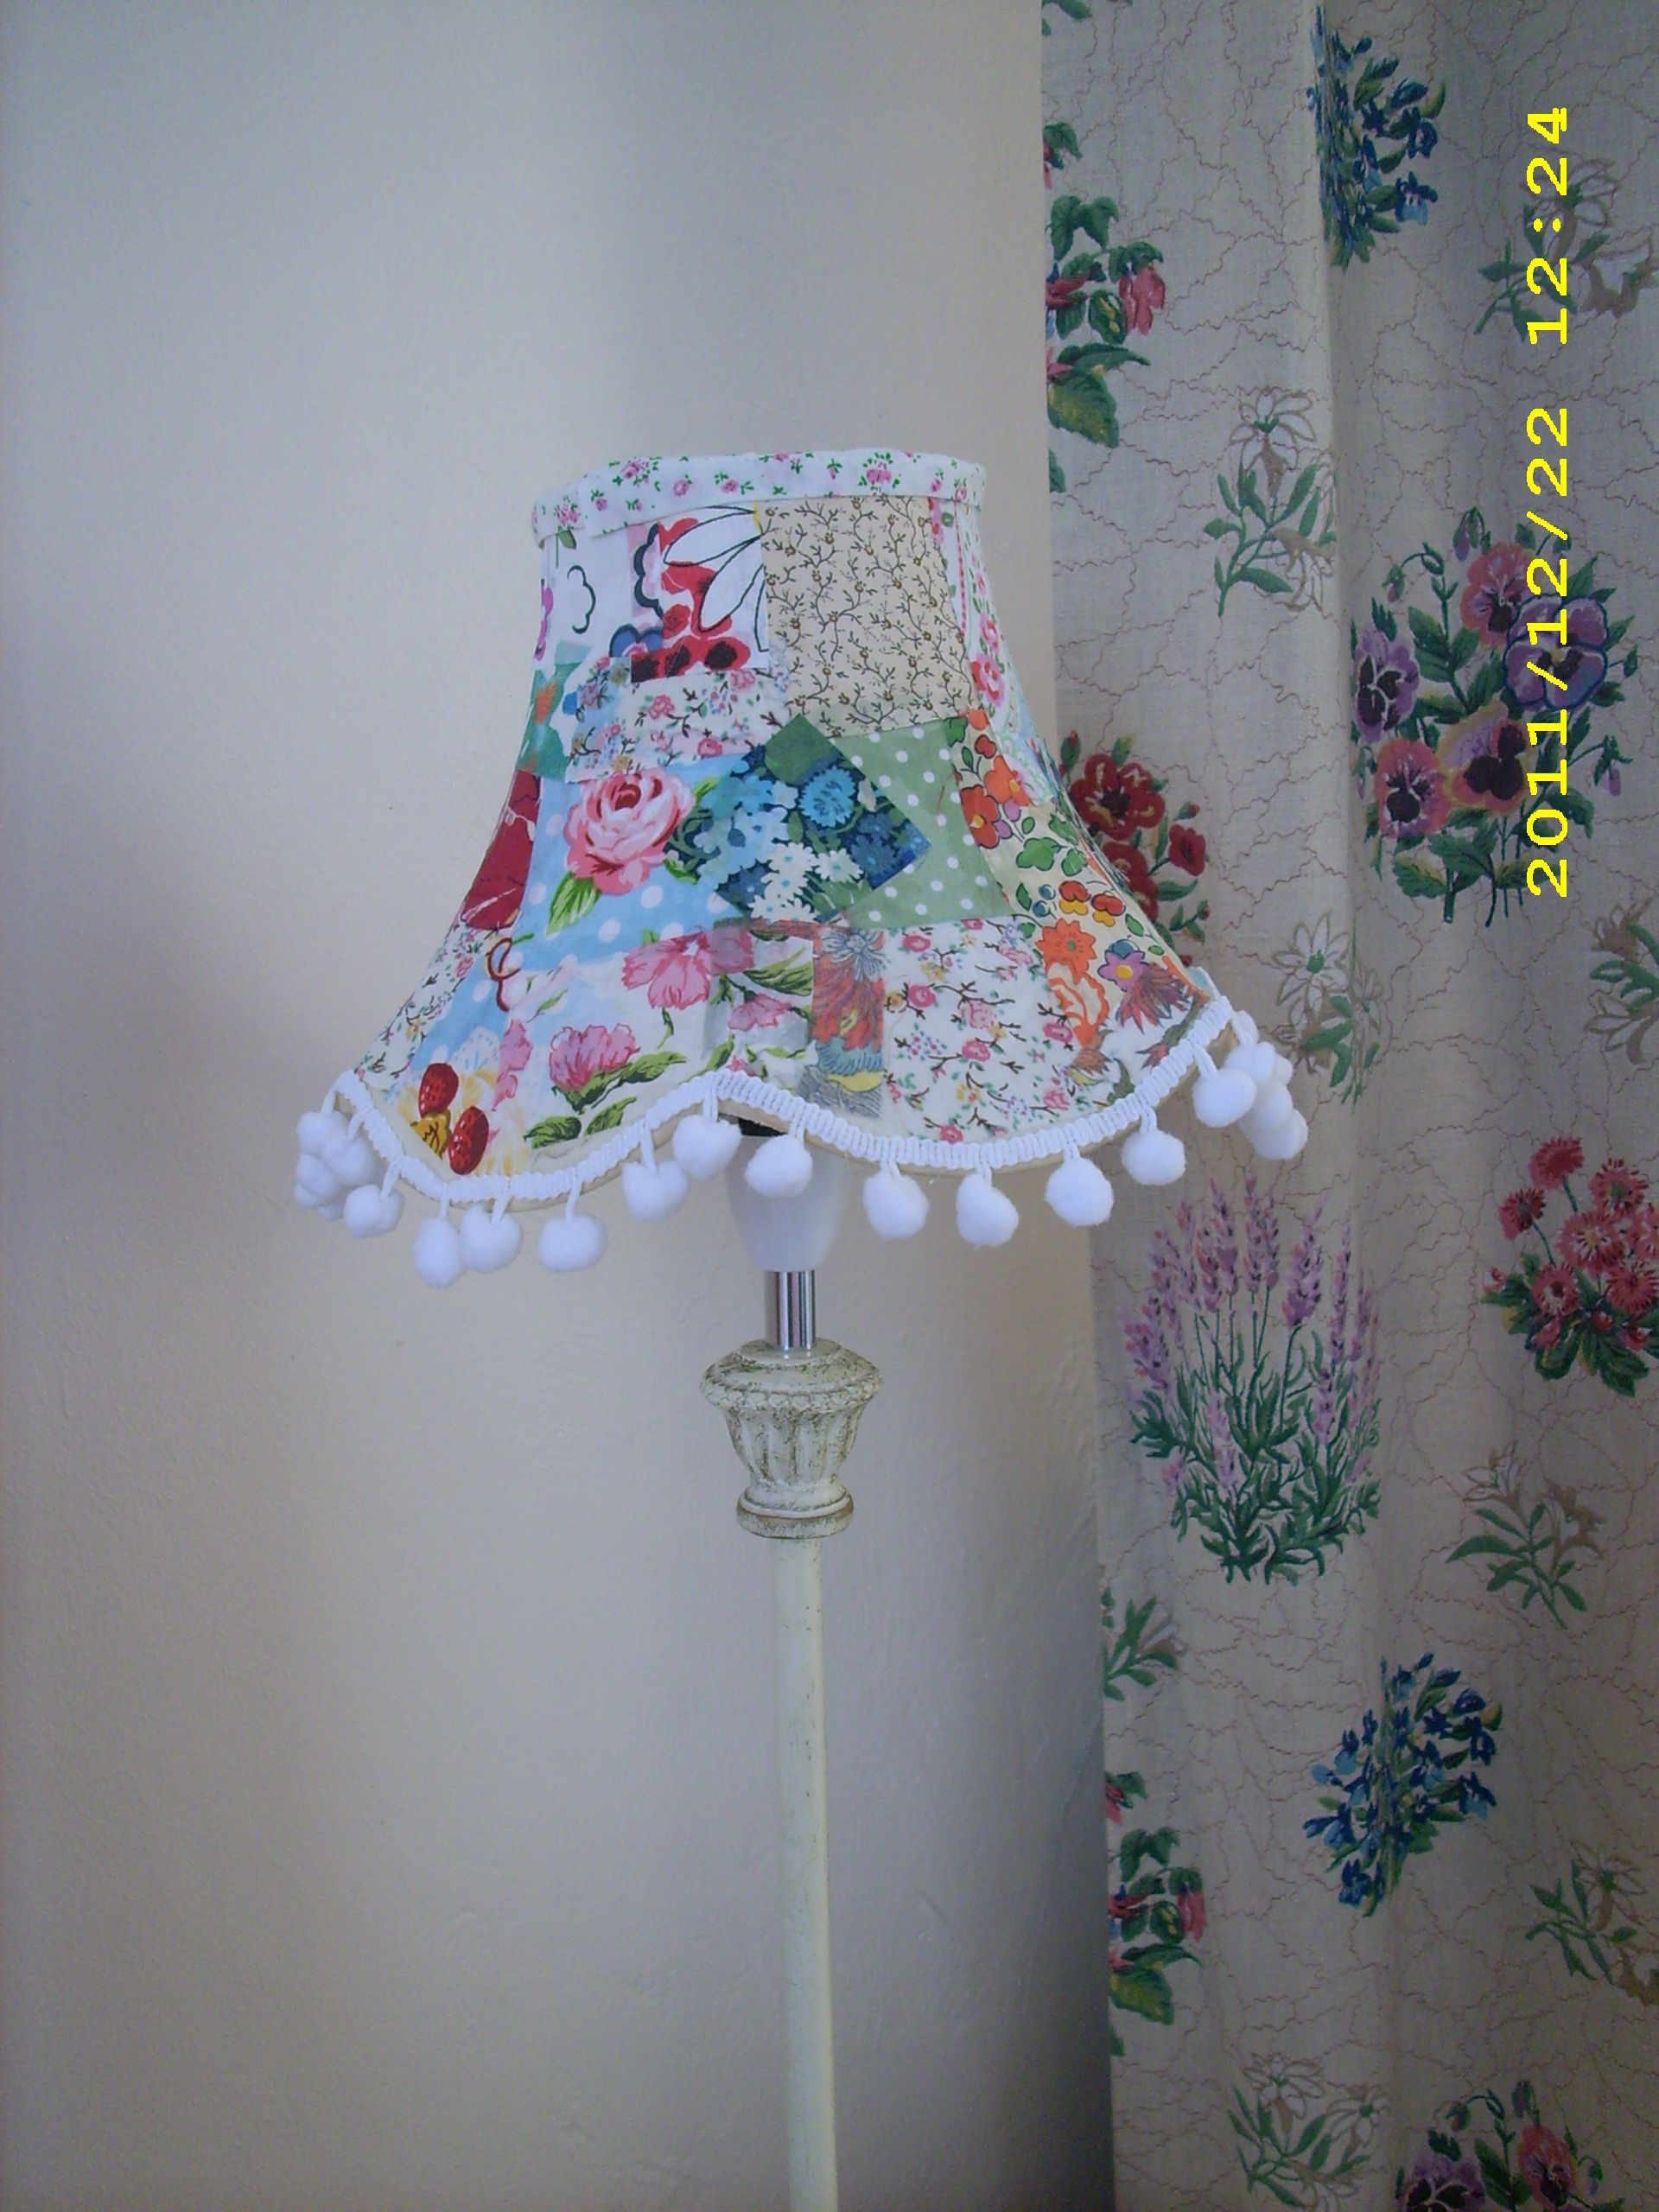 Diy Patchwork Lampshade Using Fabric Scraps Mod Podge These Started Out As Old Cream Lampshades Diy Lamp Shade Lampshades Diy Lamp